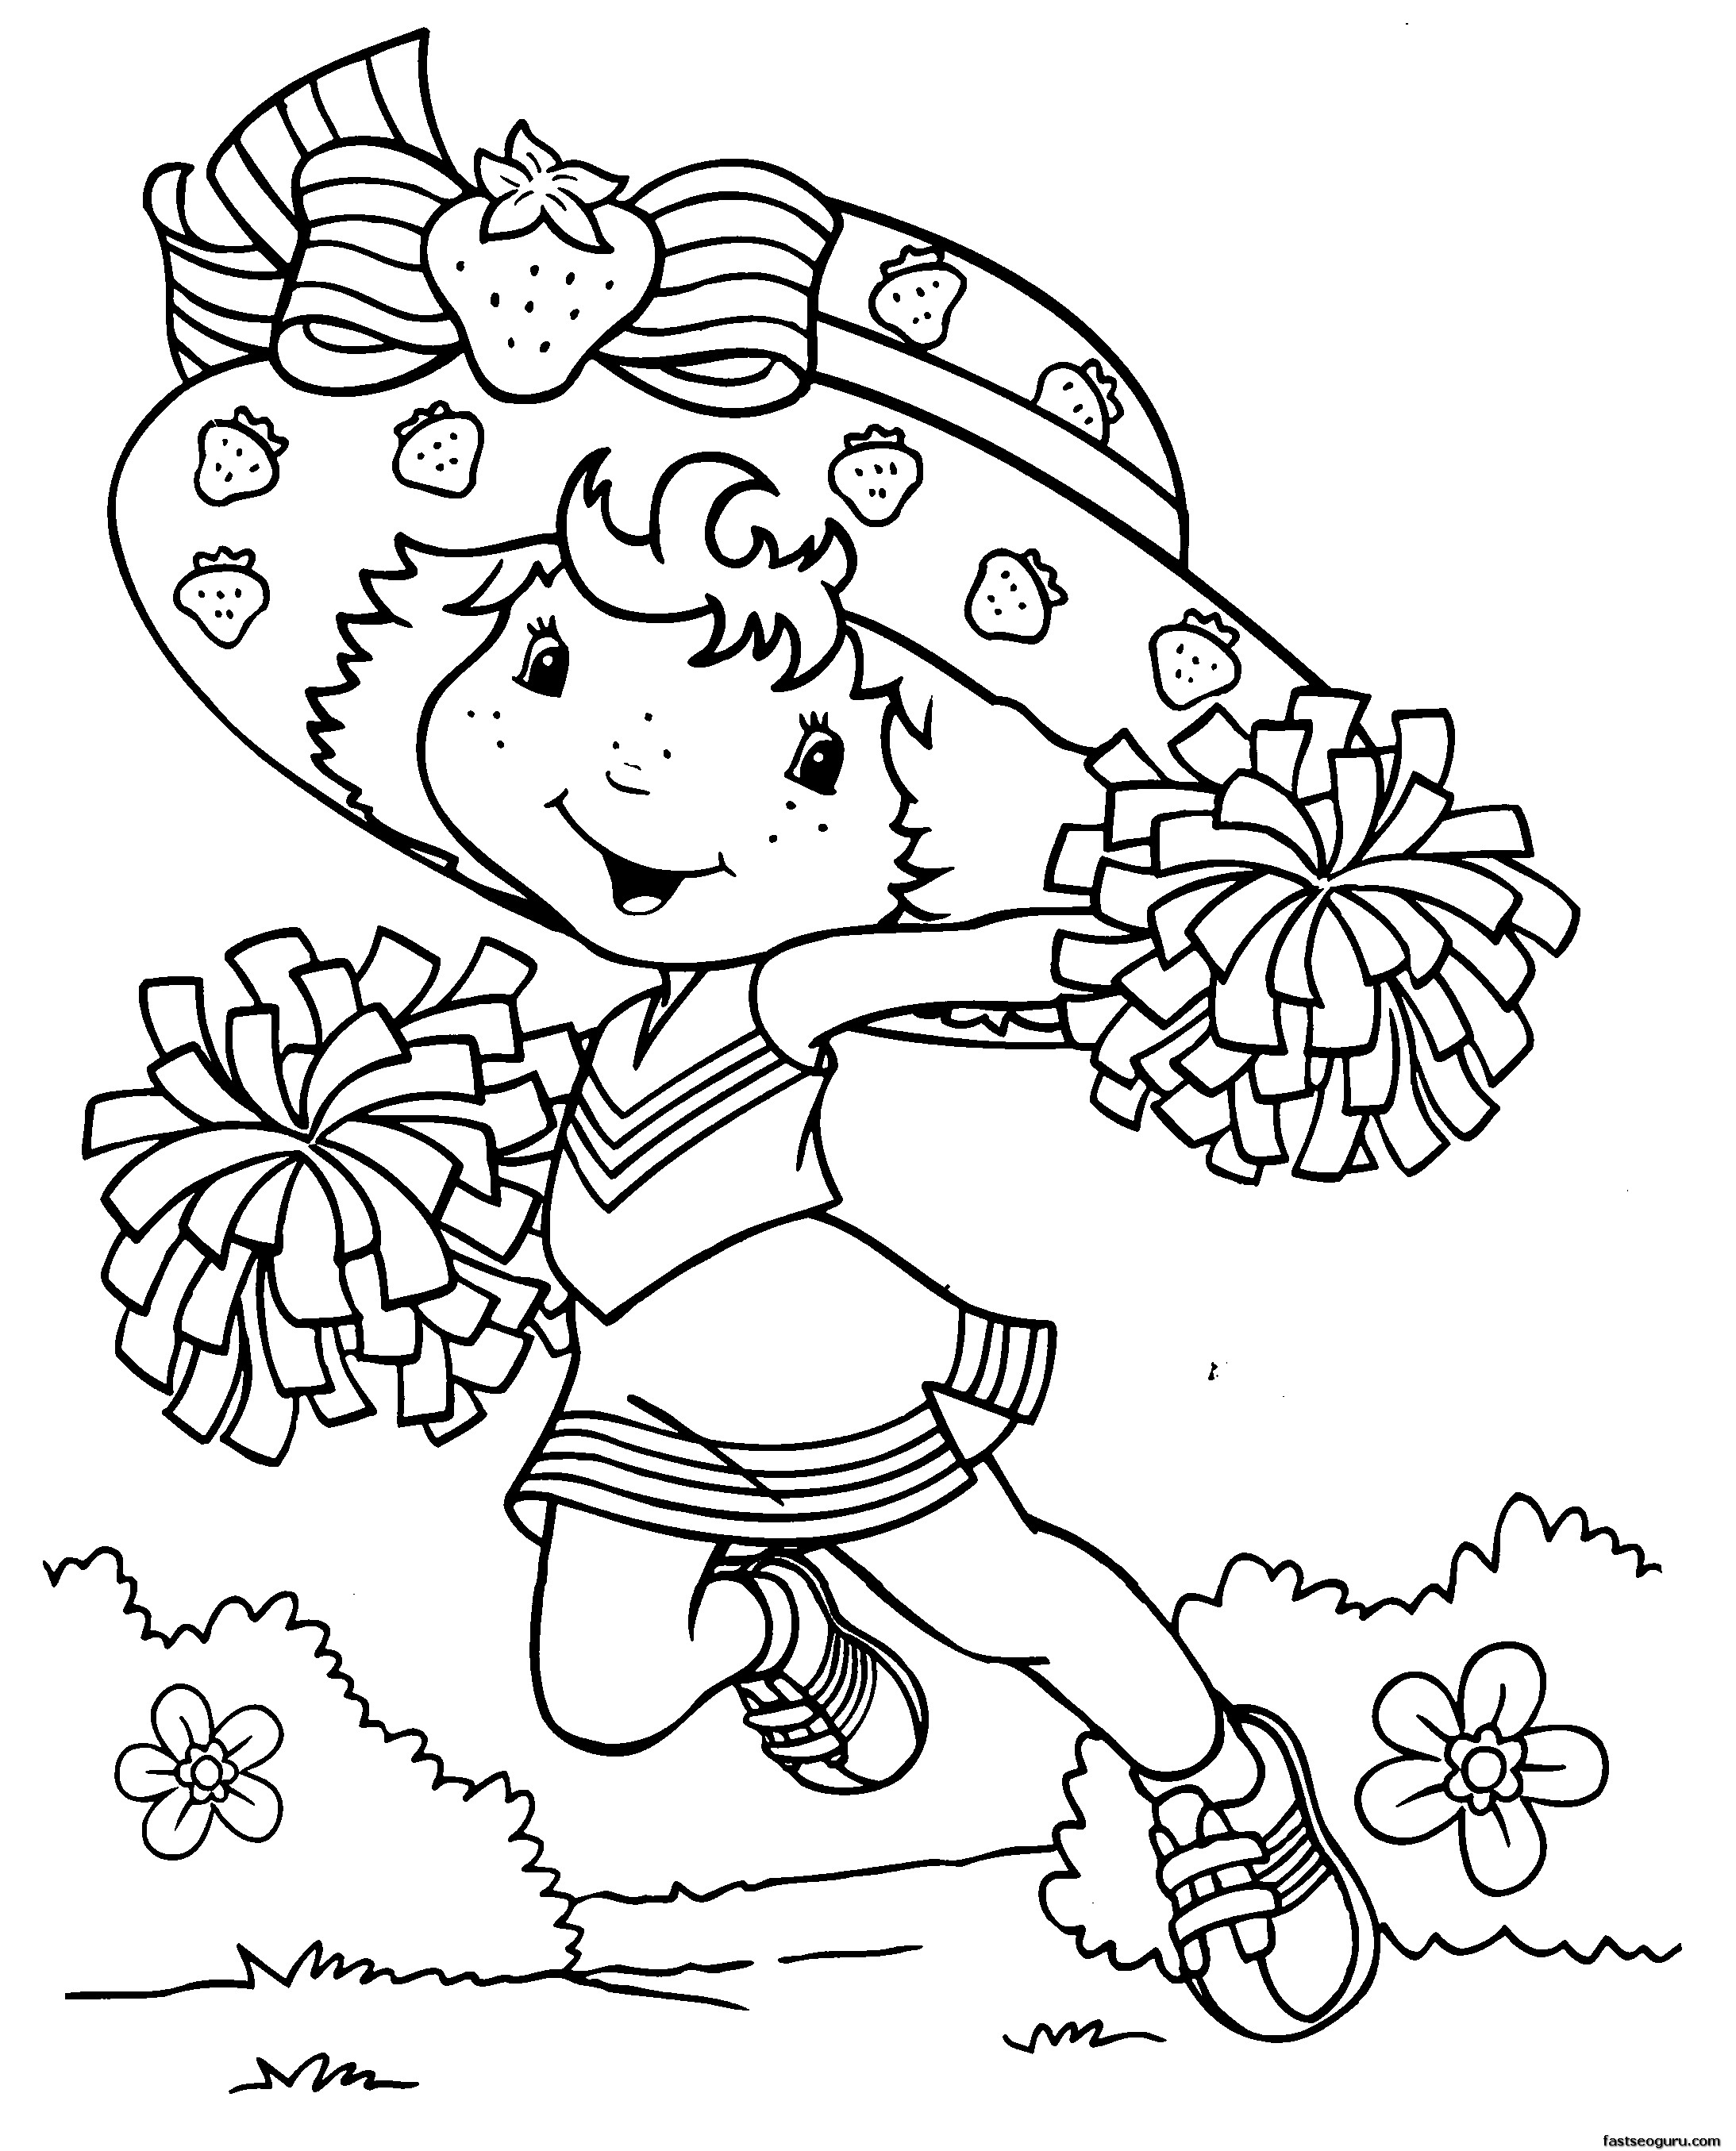 print cartoon coloring pages - photo#26